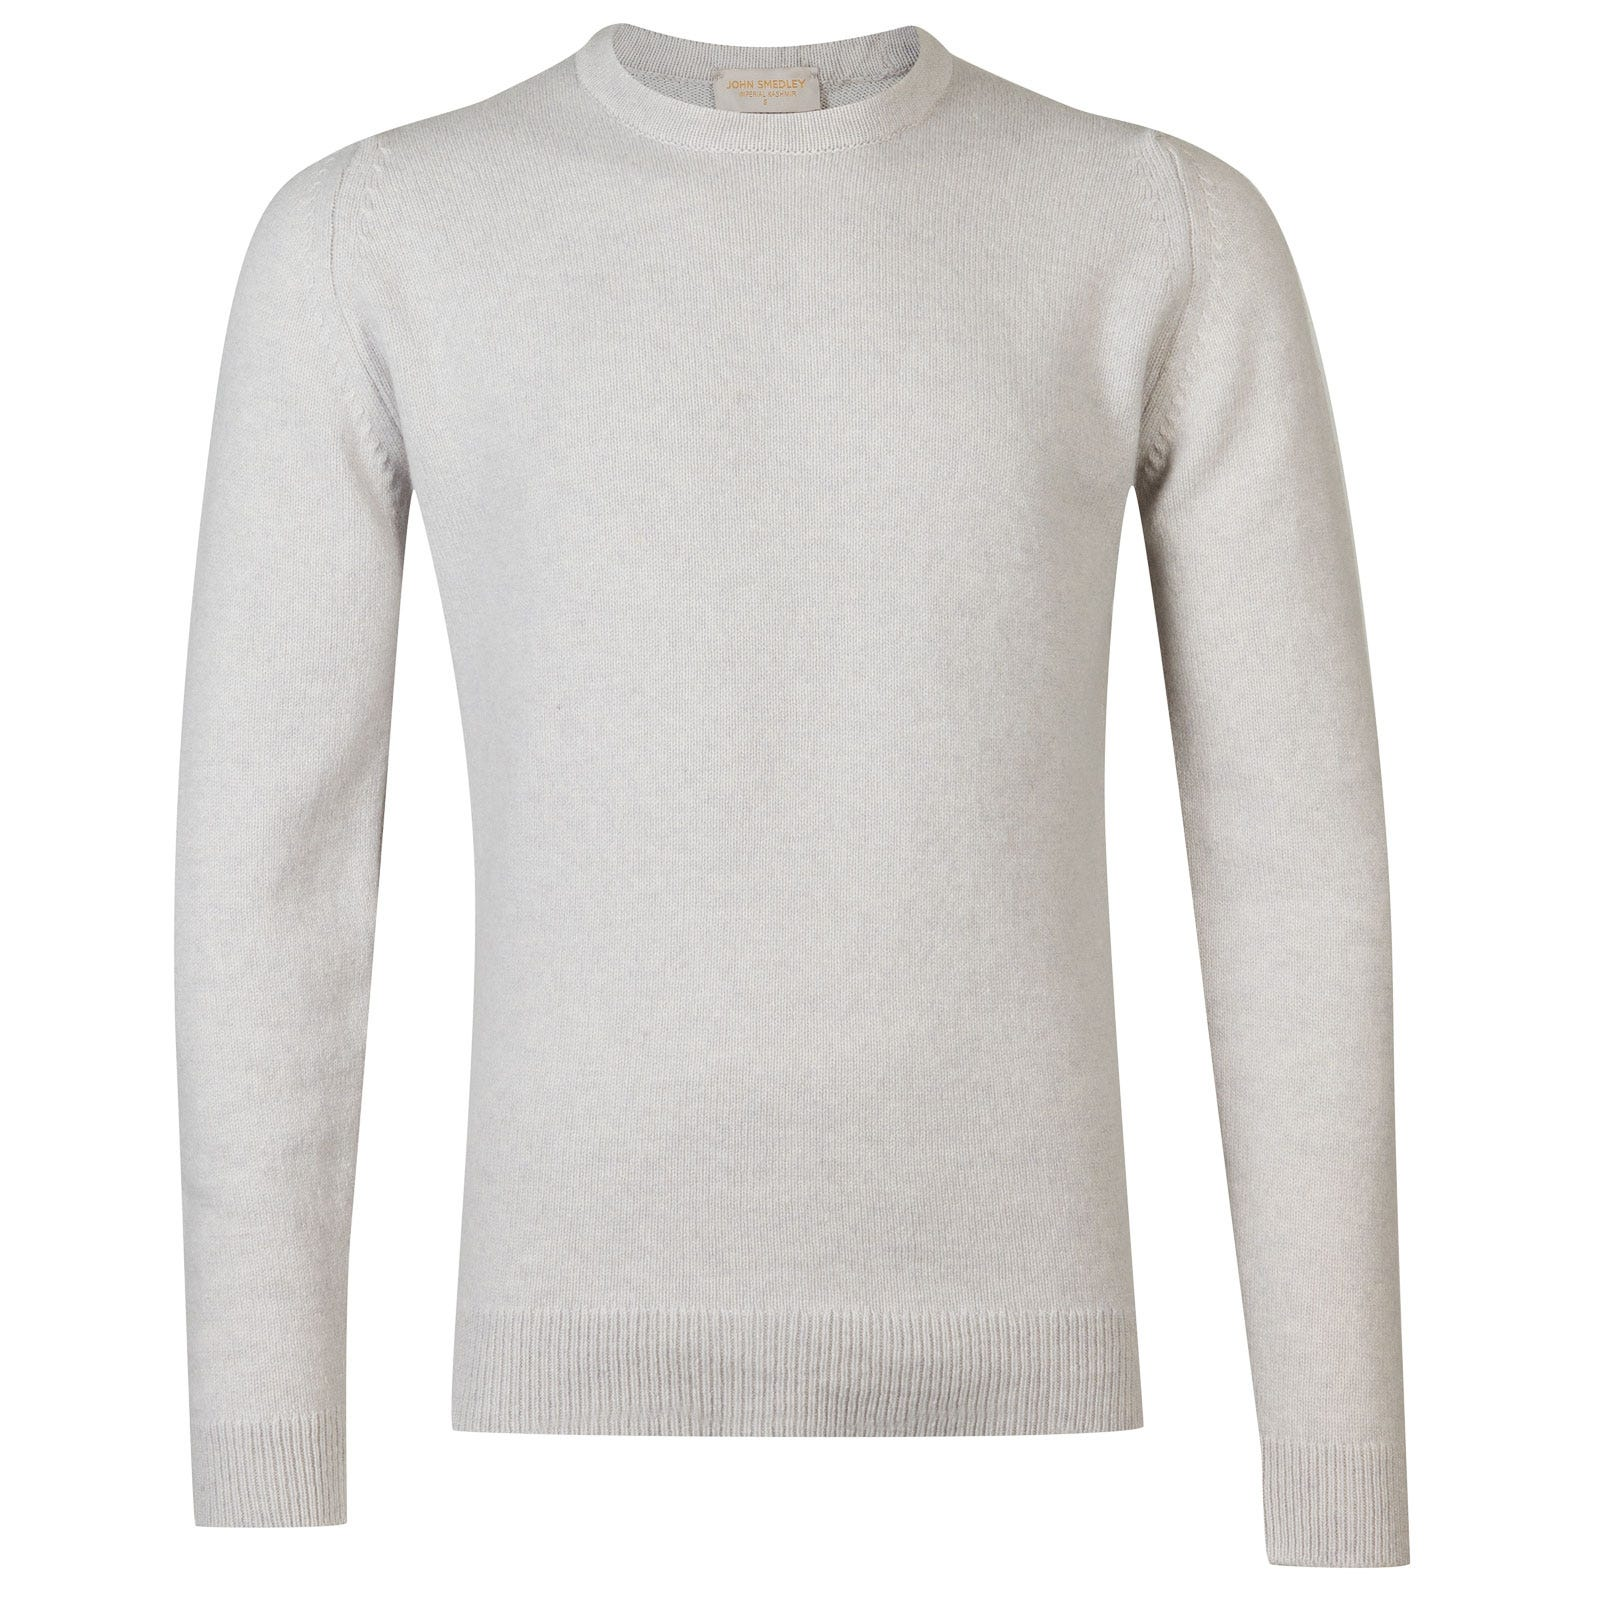 John Smedley Crowford Wool and Cashmere Pullover in Soft Grey-XXL